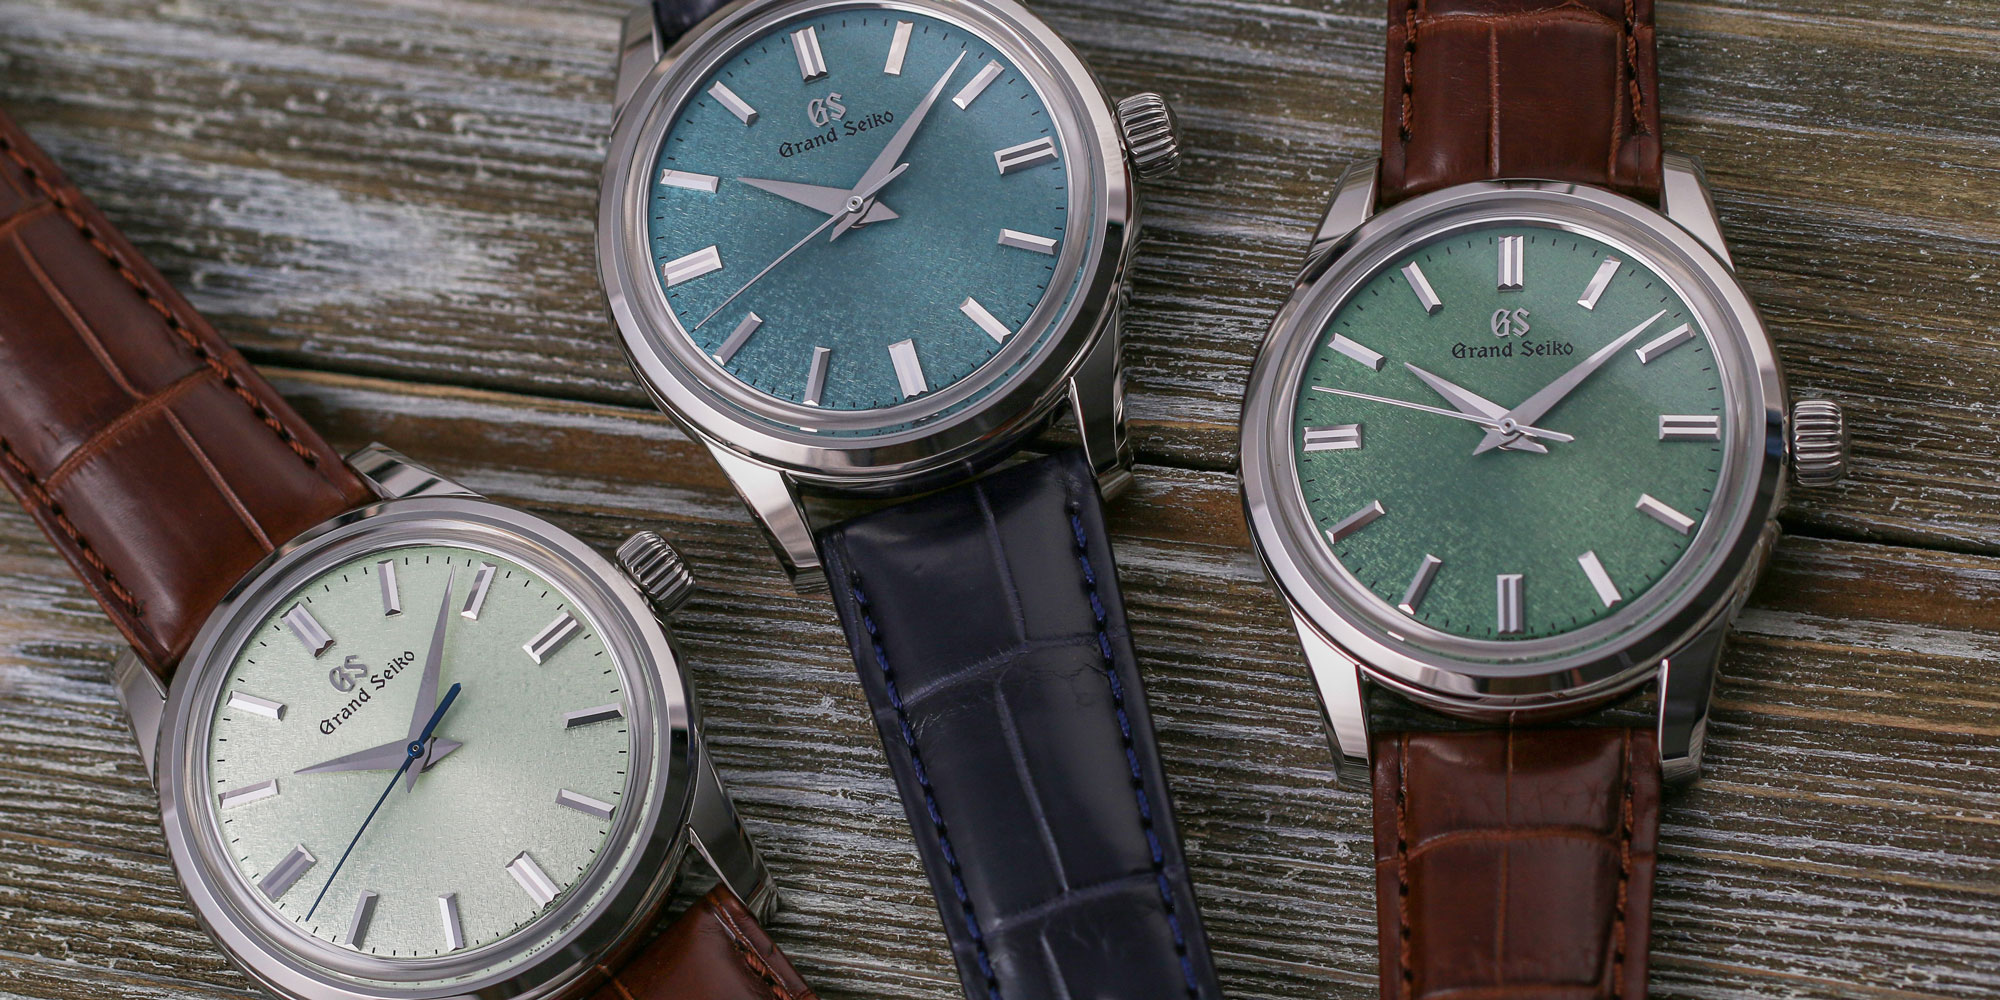 Three green dial watches from Grand Seiko - SBGW273, SBGW275, and SBGW277.